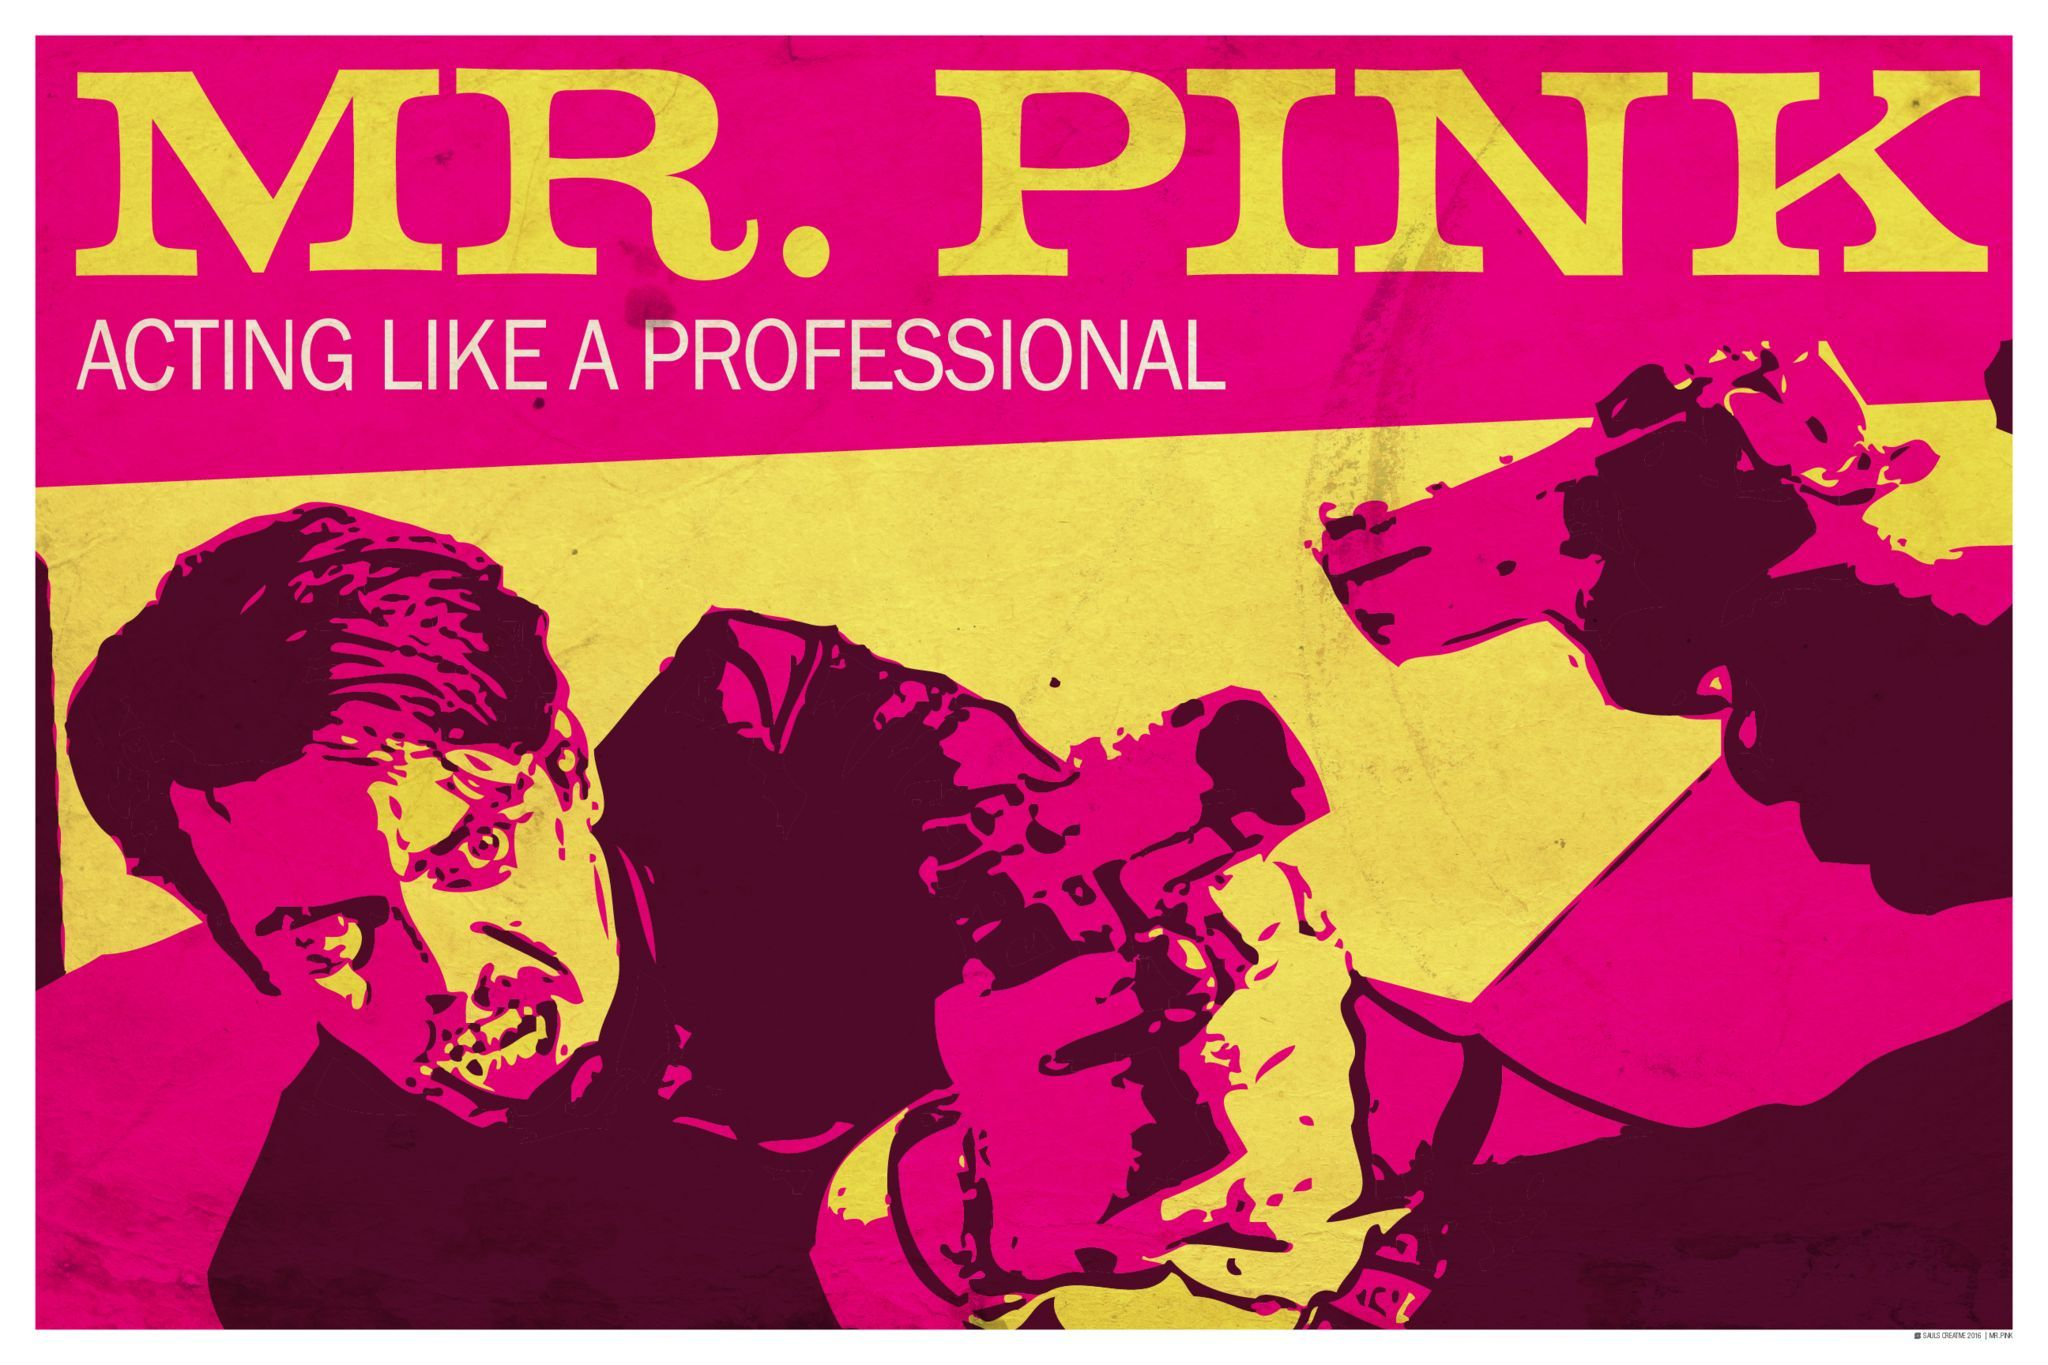 Reservoir Dogs Poster, Mr. Pink Wall Art | Products | Pinterest ...